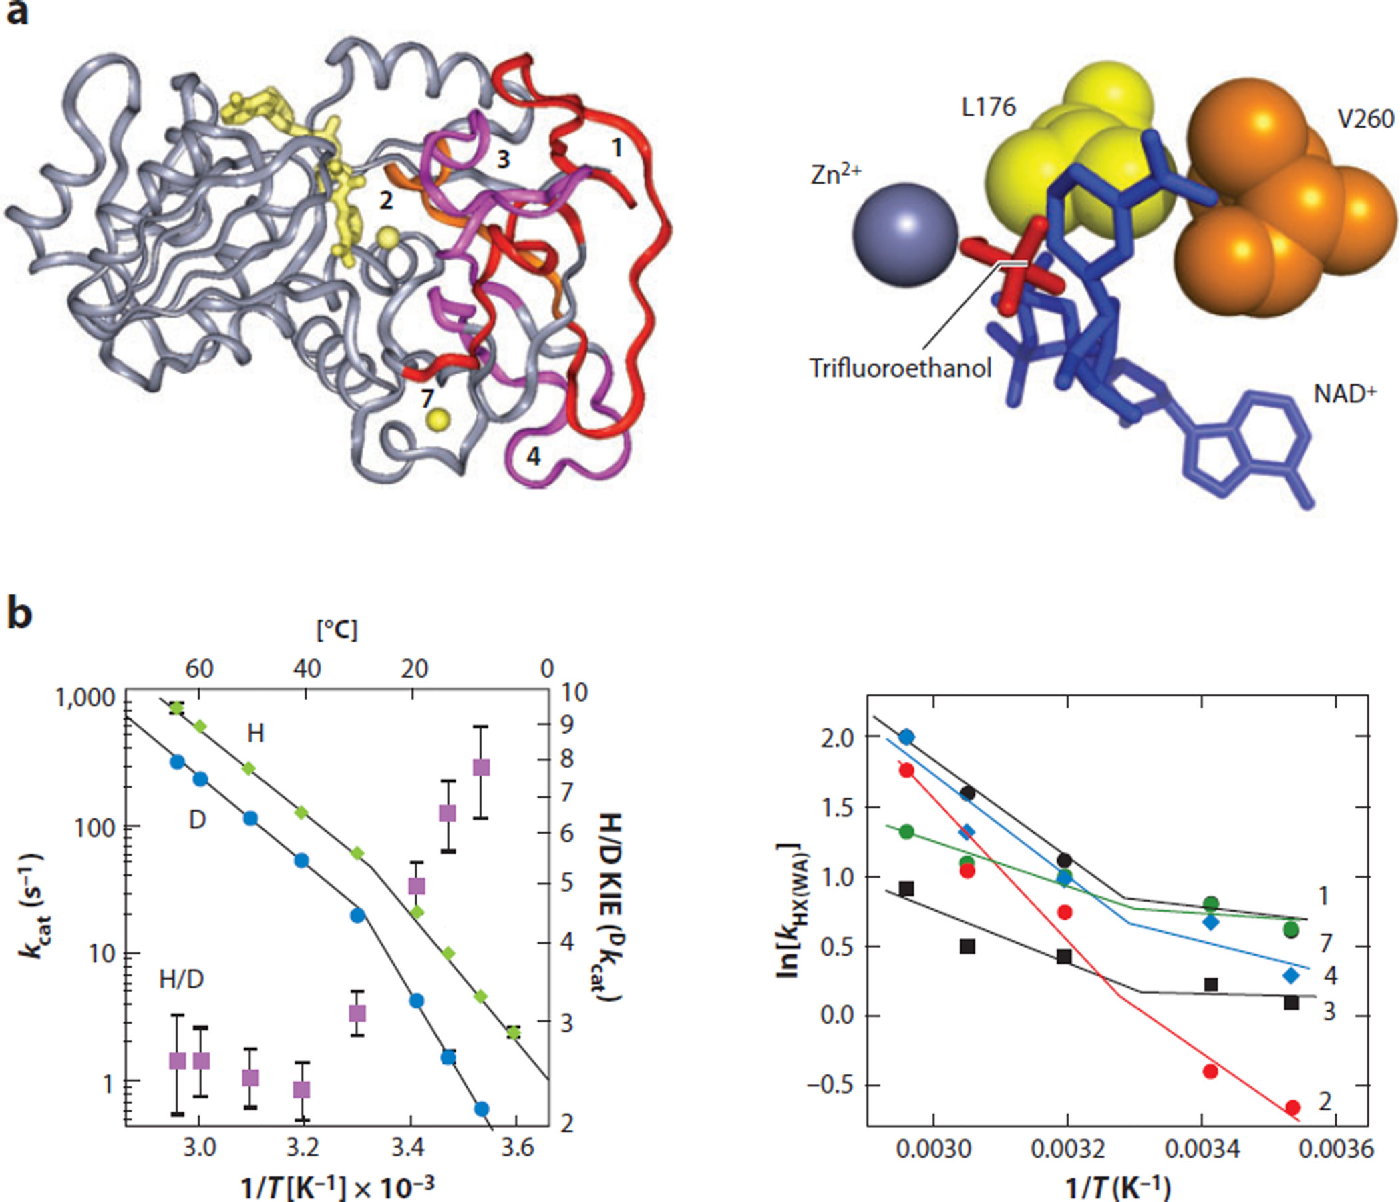 Figure 4. Identification of the regions of thermophilic alcohol dehydrogenase (ht-ADH) that are more flexible above 30°C. Hydrogen/deuterium (H/D) exchange coupled to mass spectrometric analyses of protein-derived peptide shows five peptides that undergo a temperaturedependent transition between 10°C and 65°C, analogous to the temperature dependence of the kcat and KIE. (a, left) The five peptides are mapped onto the ht-ADH structure and colored red/orange/magenta over a gray background. The active-site Zn2+ is shown as a yellow ball near peptide two, and the cofactor NAD+ is modeled into the active site (also in yellow). Reprinted with permission from Proc. Natl. Acad. Sci. USA. Copyright © 2004, National Academy of Sciences USA (119). (a, right) The active-site hydrophobic side chains (Leu176 and Val260) that sit behind the nicotinamide ring of cofactor are illustrated. Reprinted with permission from Biochemistry. Copyright © 2012, American Chemical Society (123). (b) The 30°C transition in behavior occurs in kcat, Dkcat, and kHX(WA); the